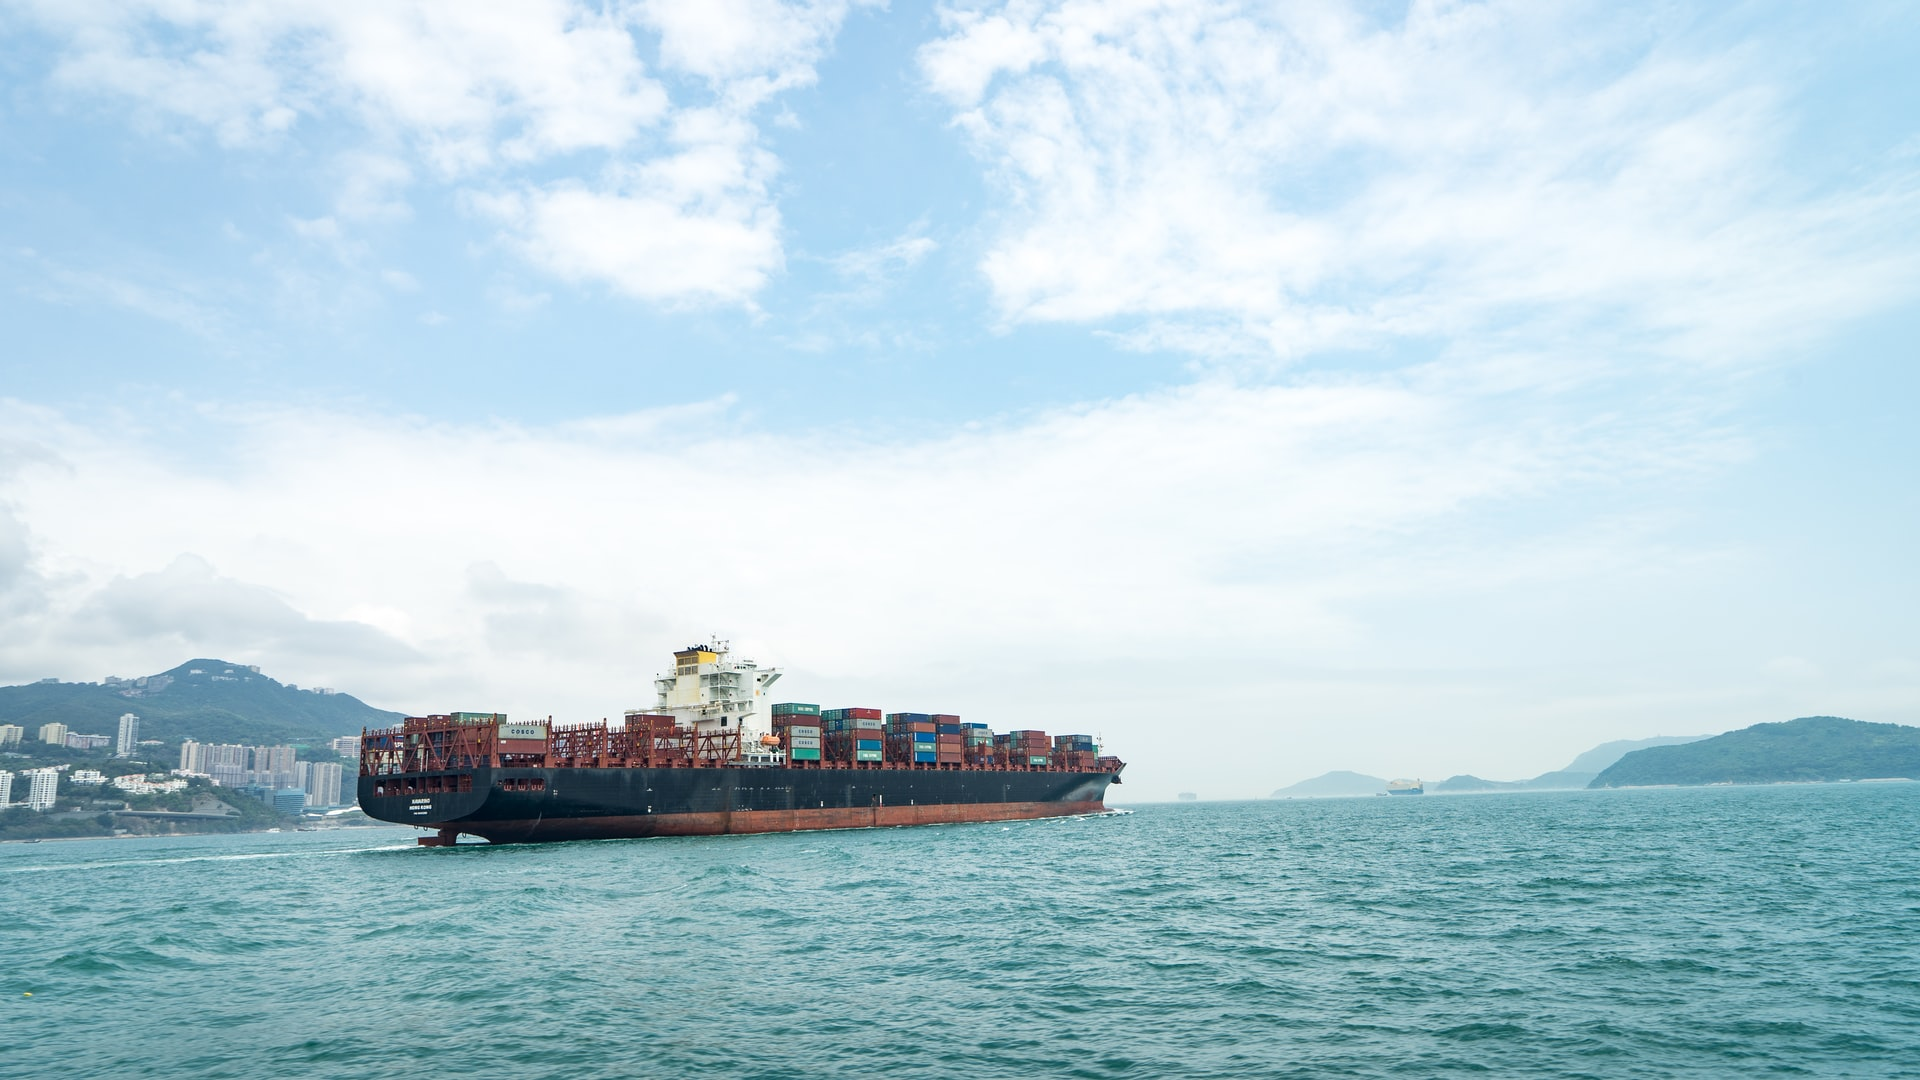 A shipping vessel with cargo